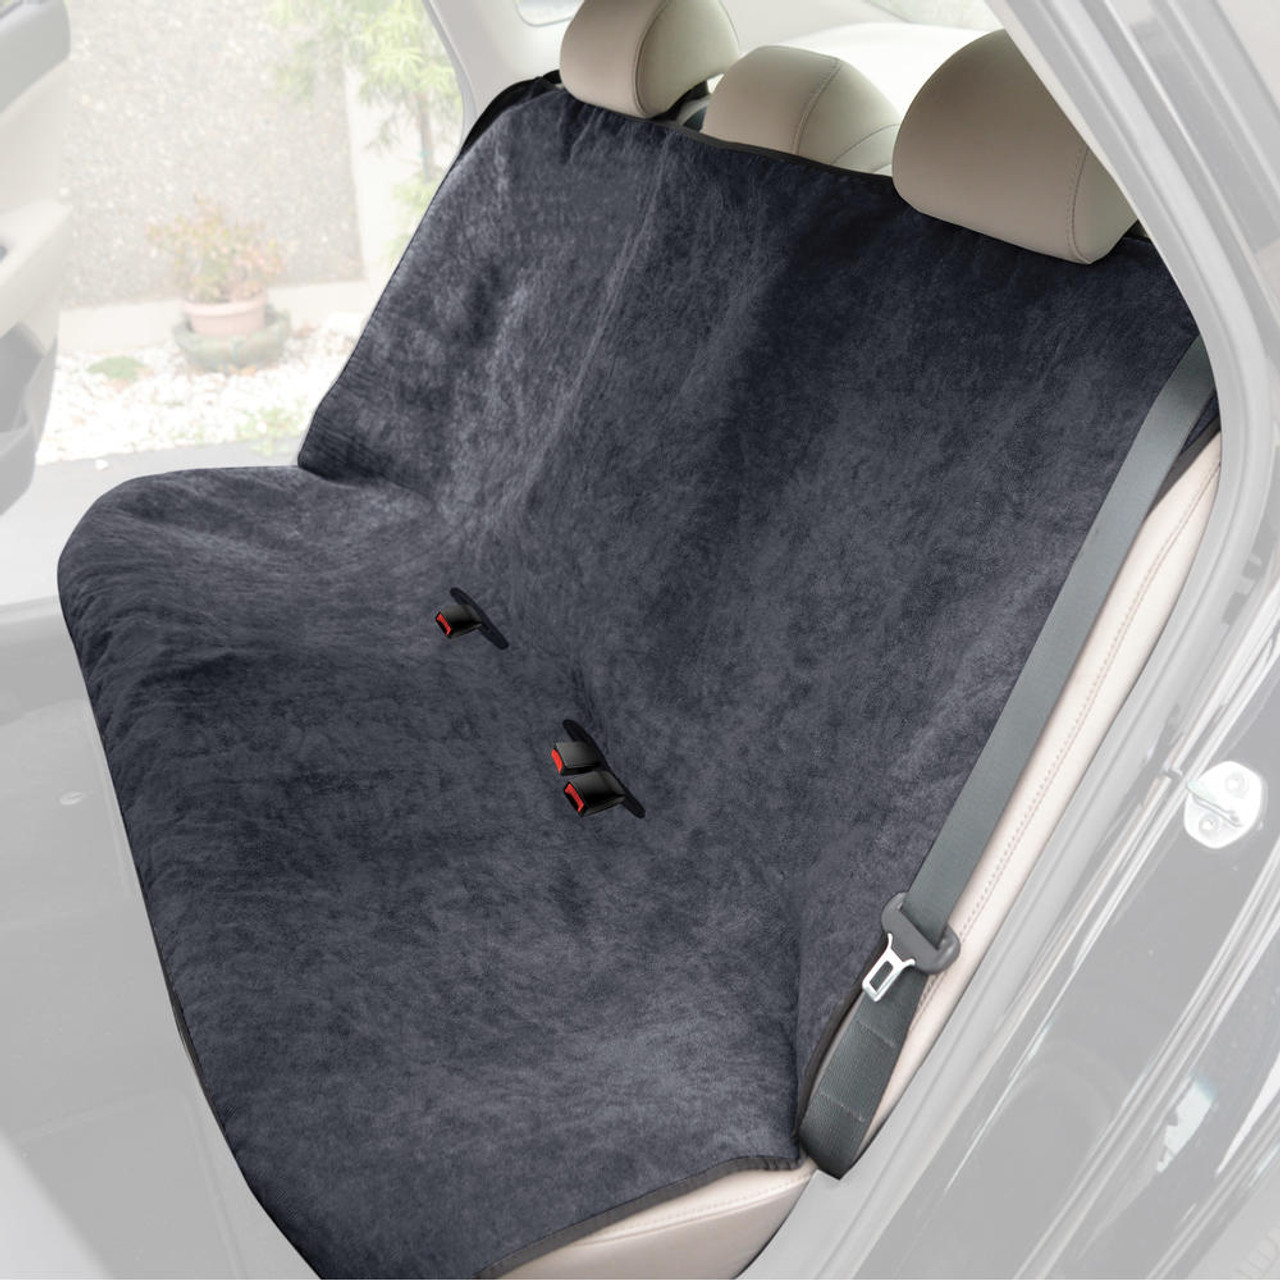 Car Front Seat Covers Waterproof Yoga Quick-Dry Sweat Towel Seat Mat Microfiber Auto Seat Protector for Fitness Gym Running Workout Beach